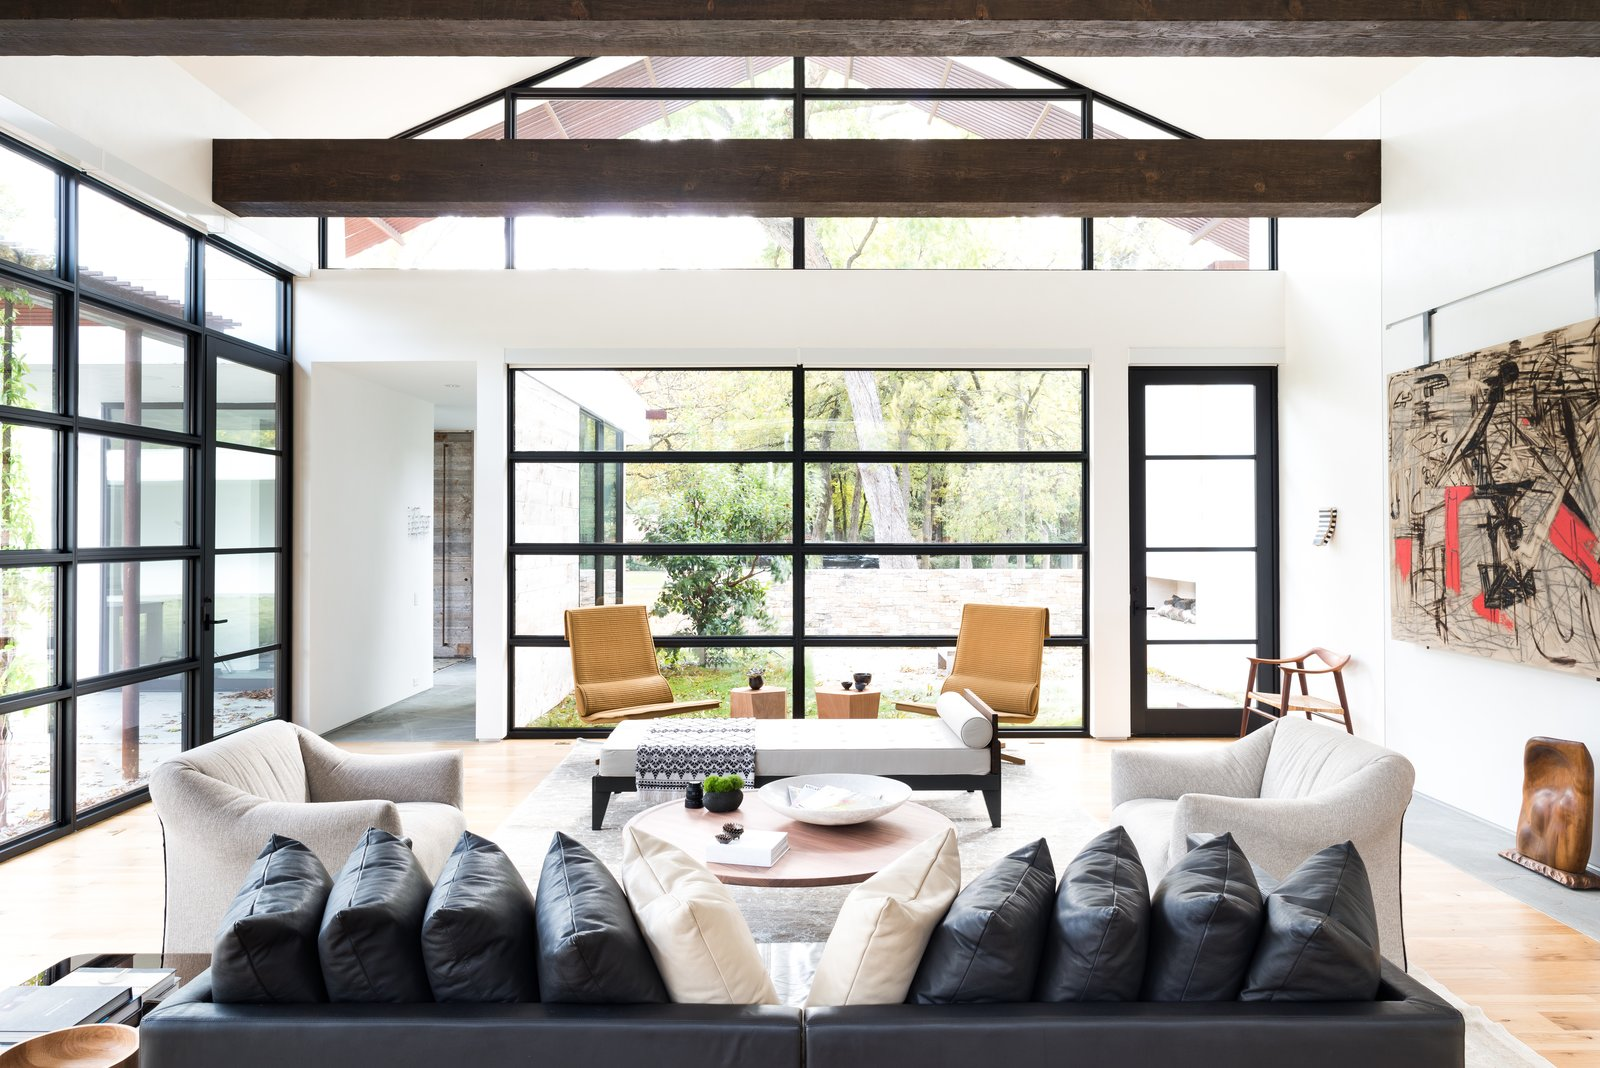 """For this project, the husband loved ultra-modern design, while the wife leaned towards a more traditional aesthetic. How to please both? """"Through the design process, we learned that their tastes were actually more closely aligned when we focused on the desired 'feel' of the home versus specific design details,"""" Field says.  He and his colleagues balanced rustic, exposed ceiling beams with elegant venetian plaster walls, and artful aluminum storefront windows with functional white oak plank flooring."""